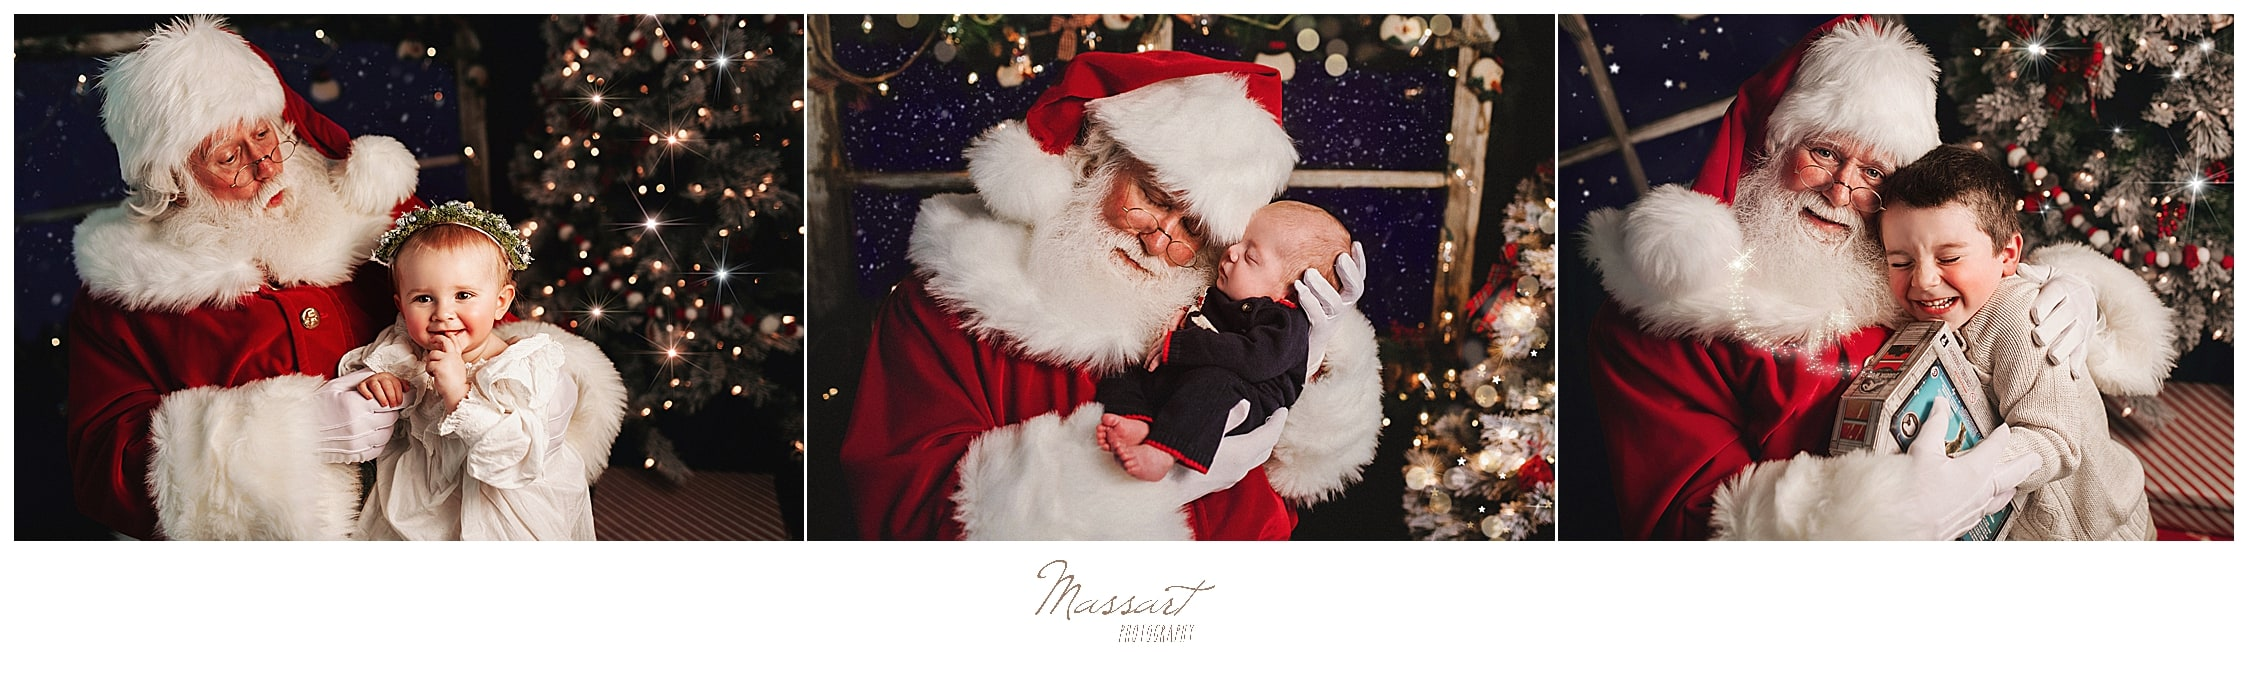 Santa sessions for christmas specials at Massart Photography in Rhode Island